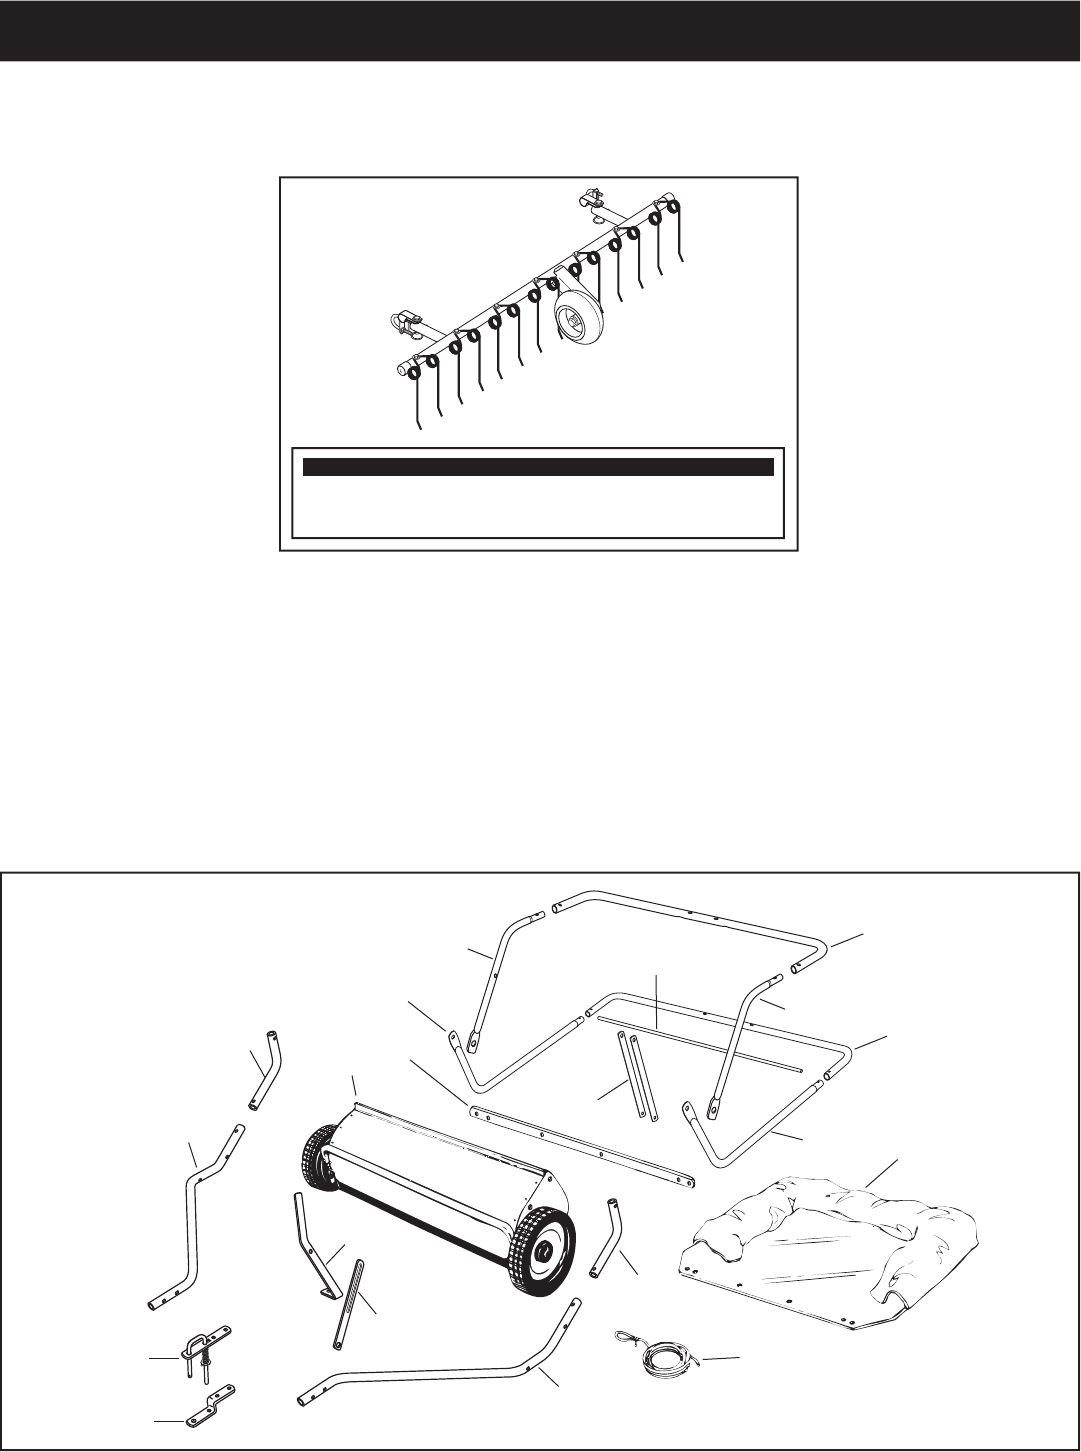 Page 3 of Craftsman Lawn Sweeper 486.24222 User Guide